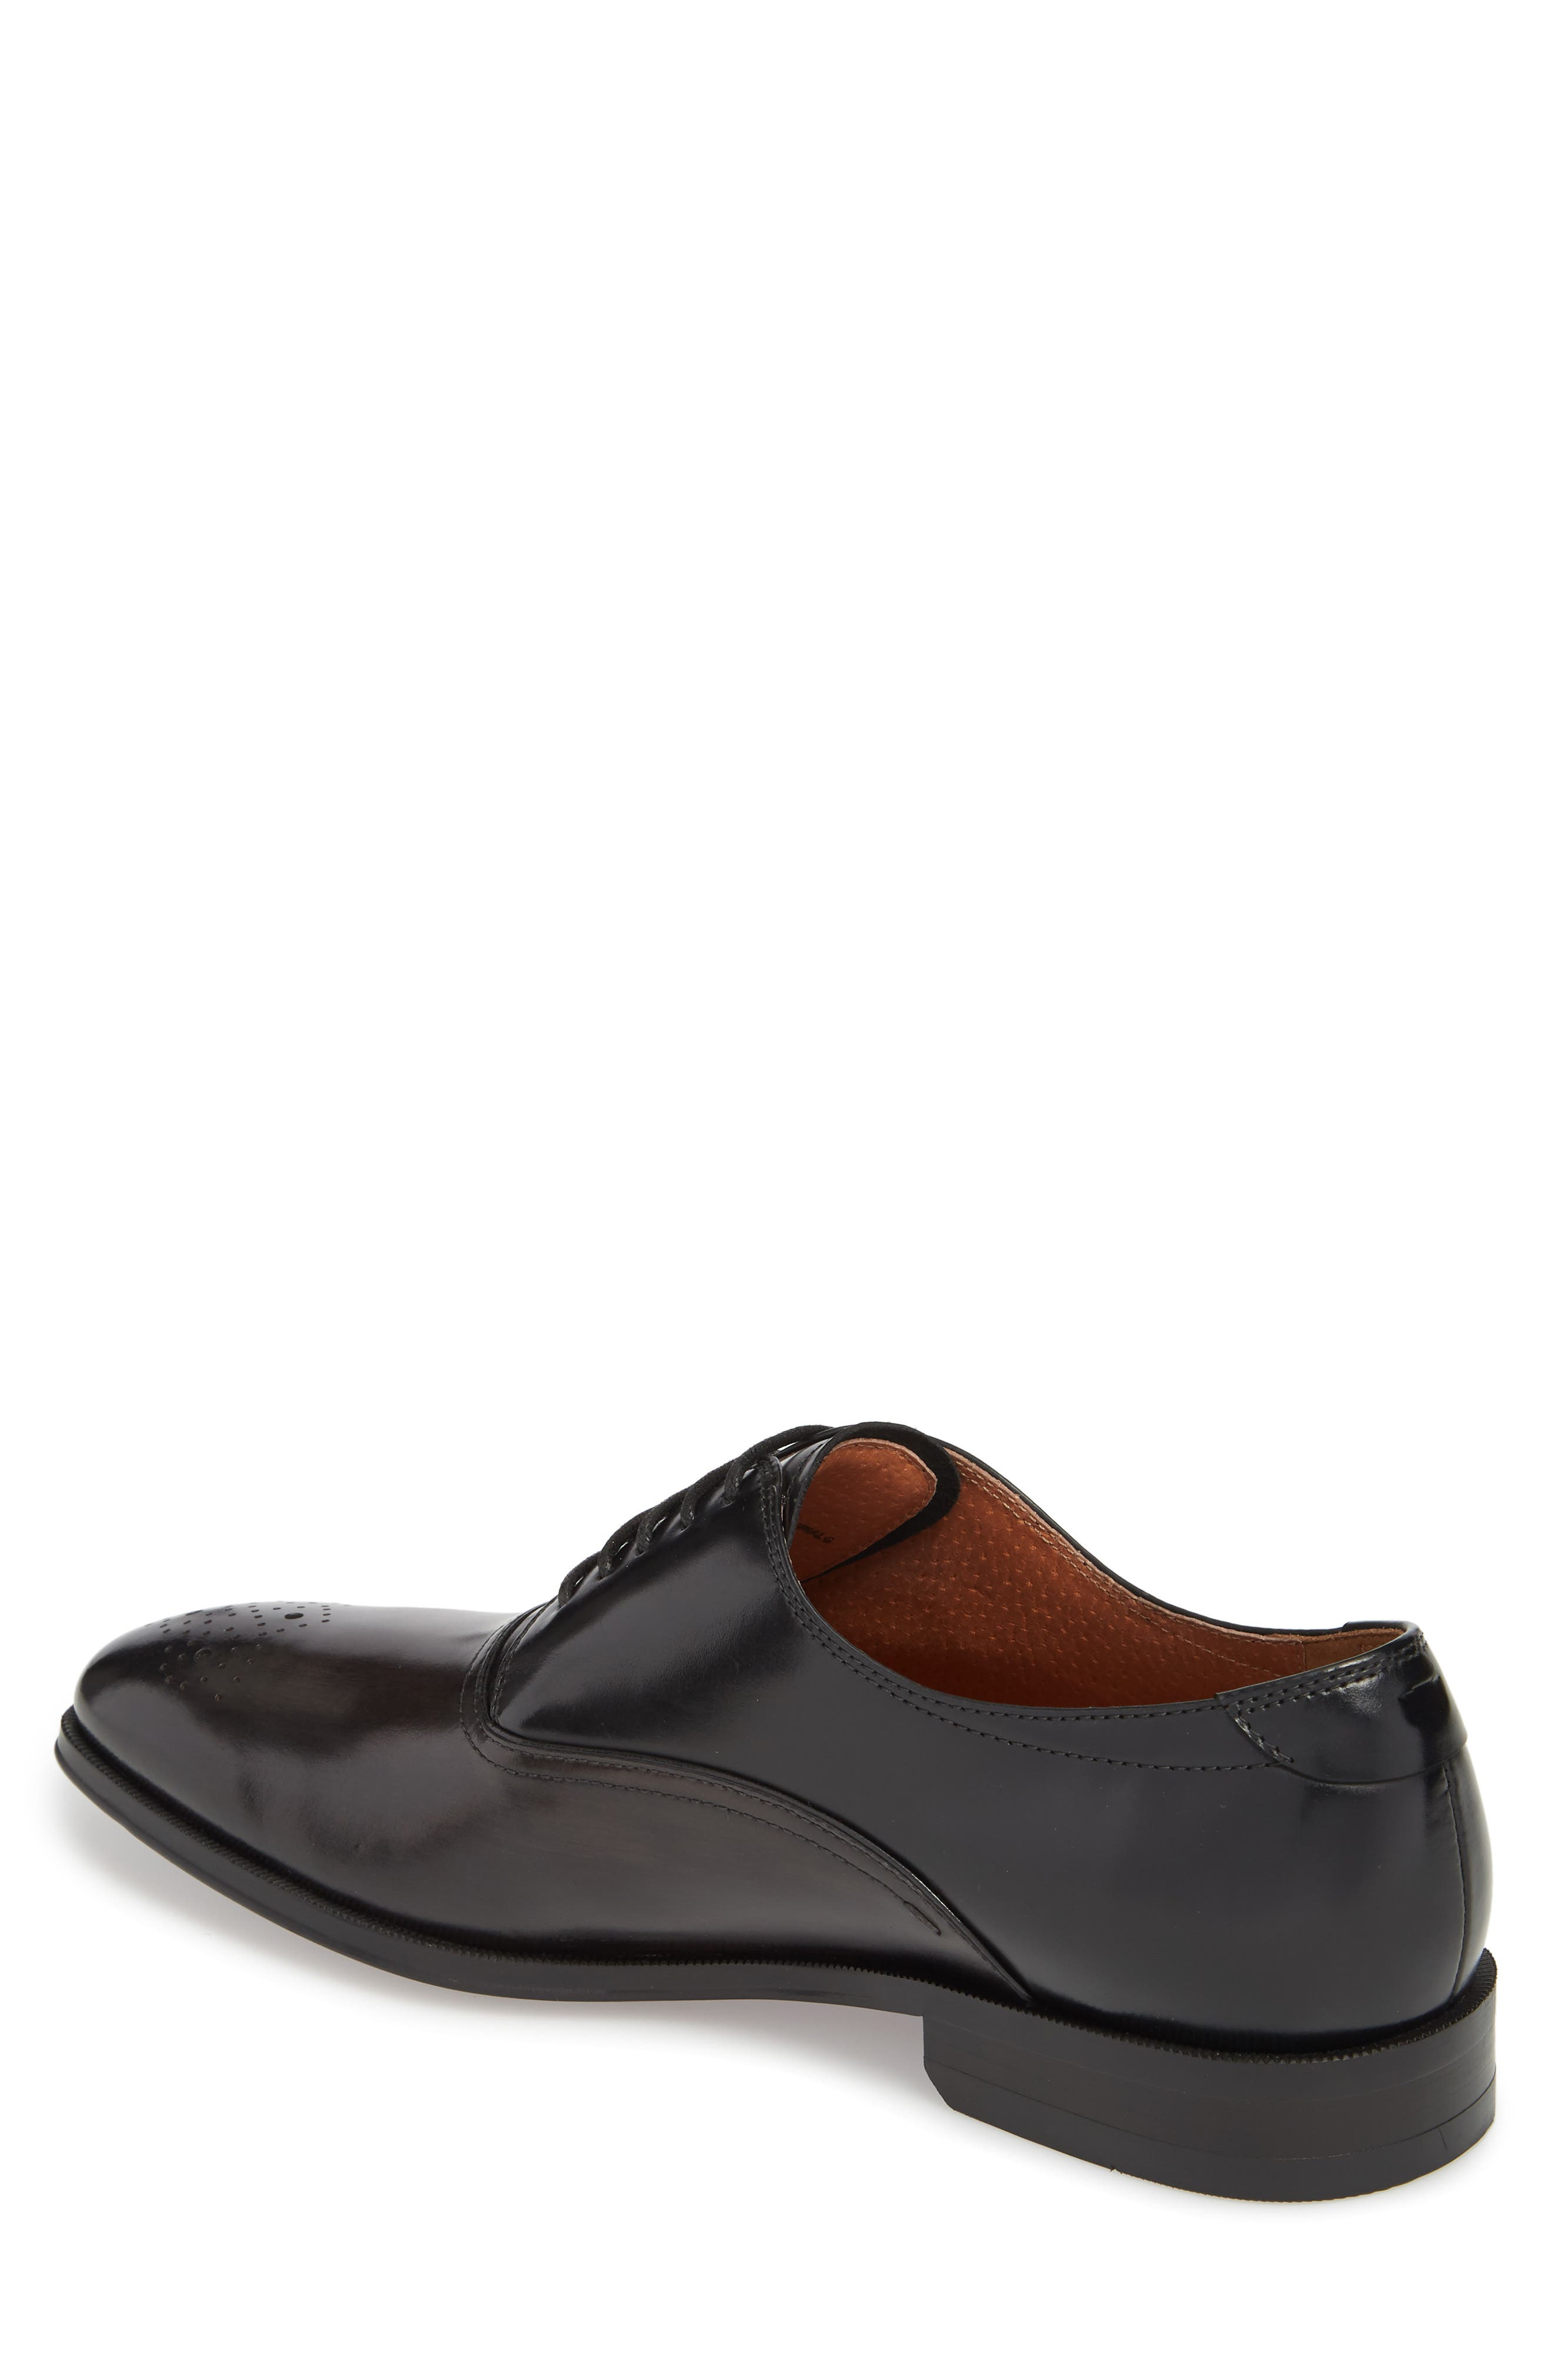 Belfast Brogued Derby,                             Alternate thumbnail 2, color,                             GRAY/ BLACK LEATHER